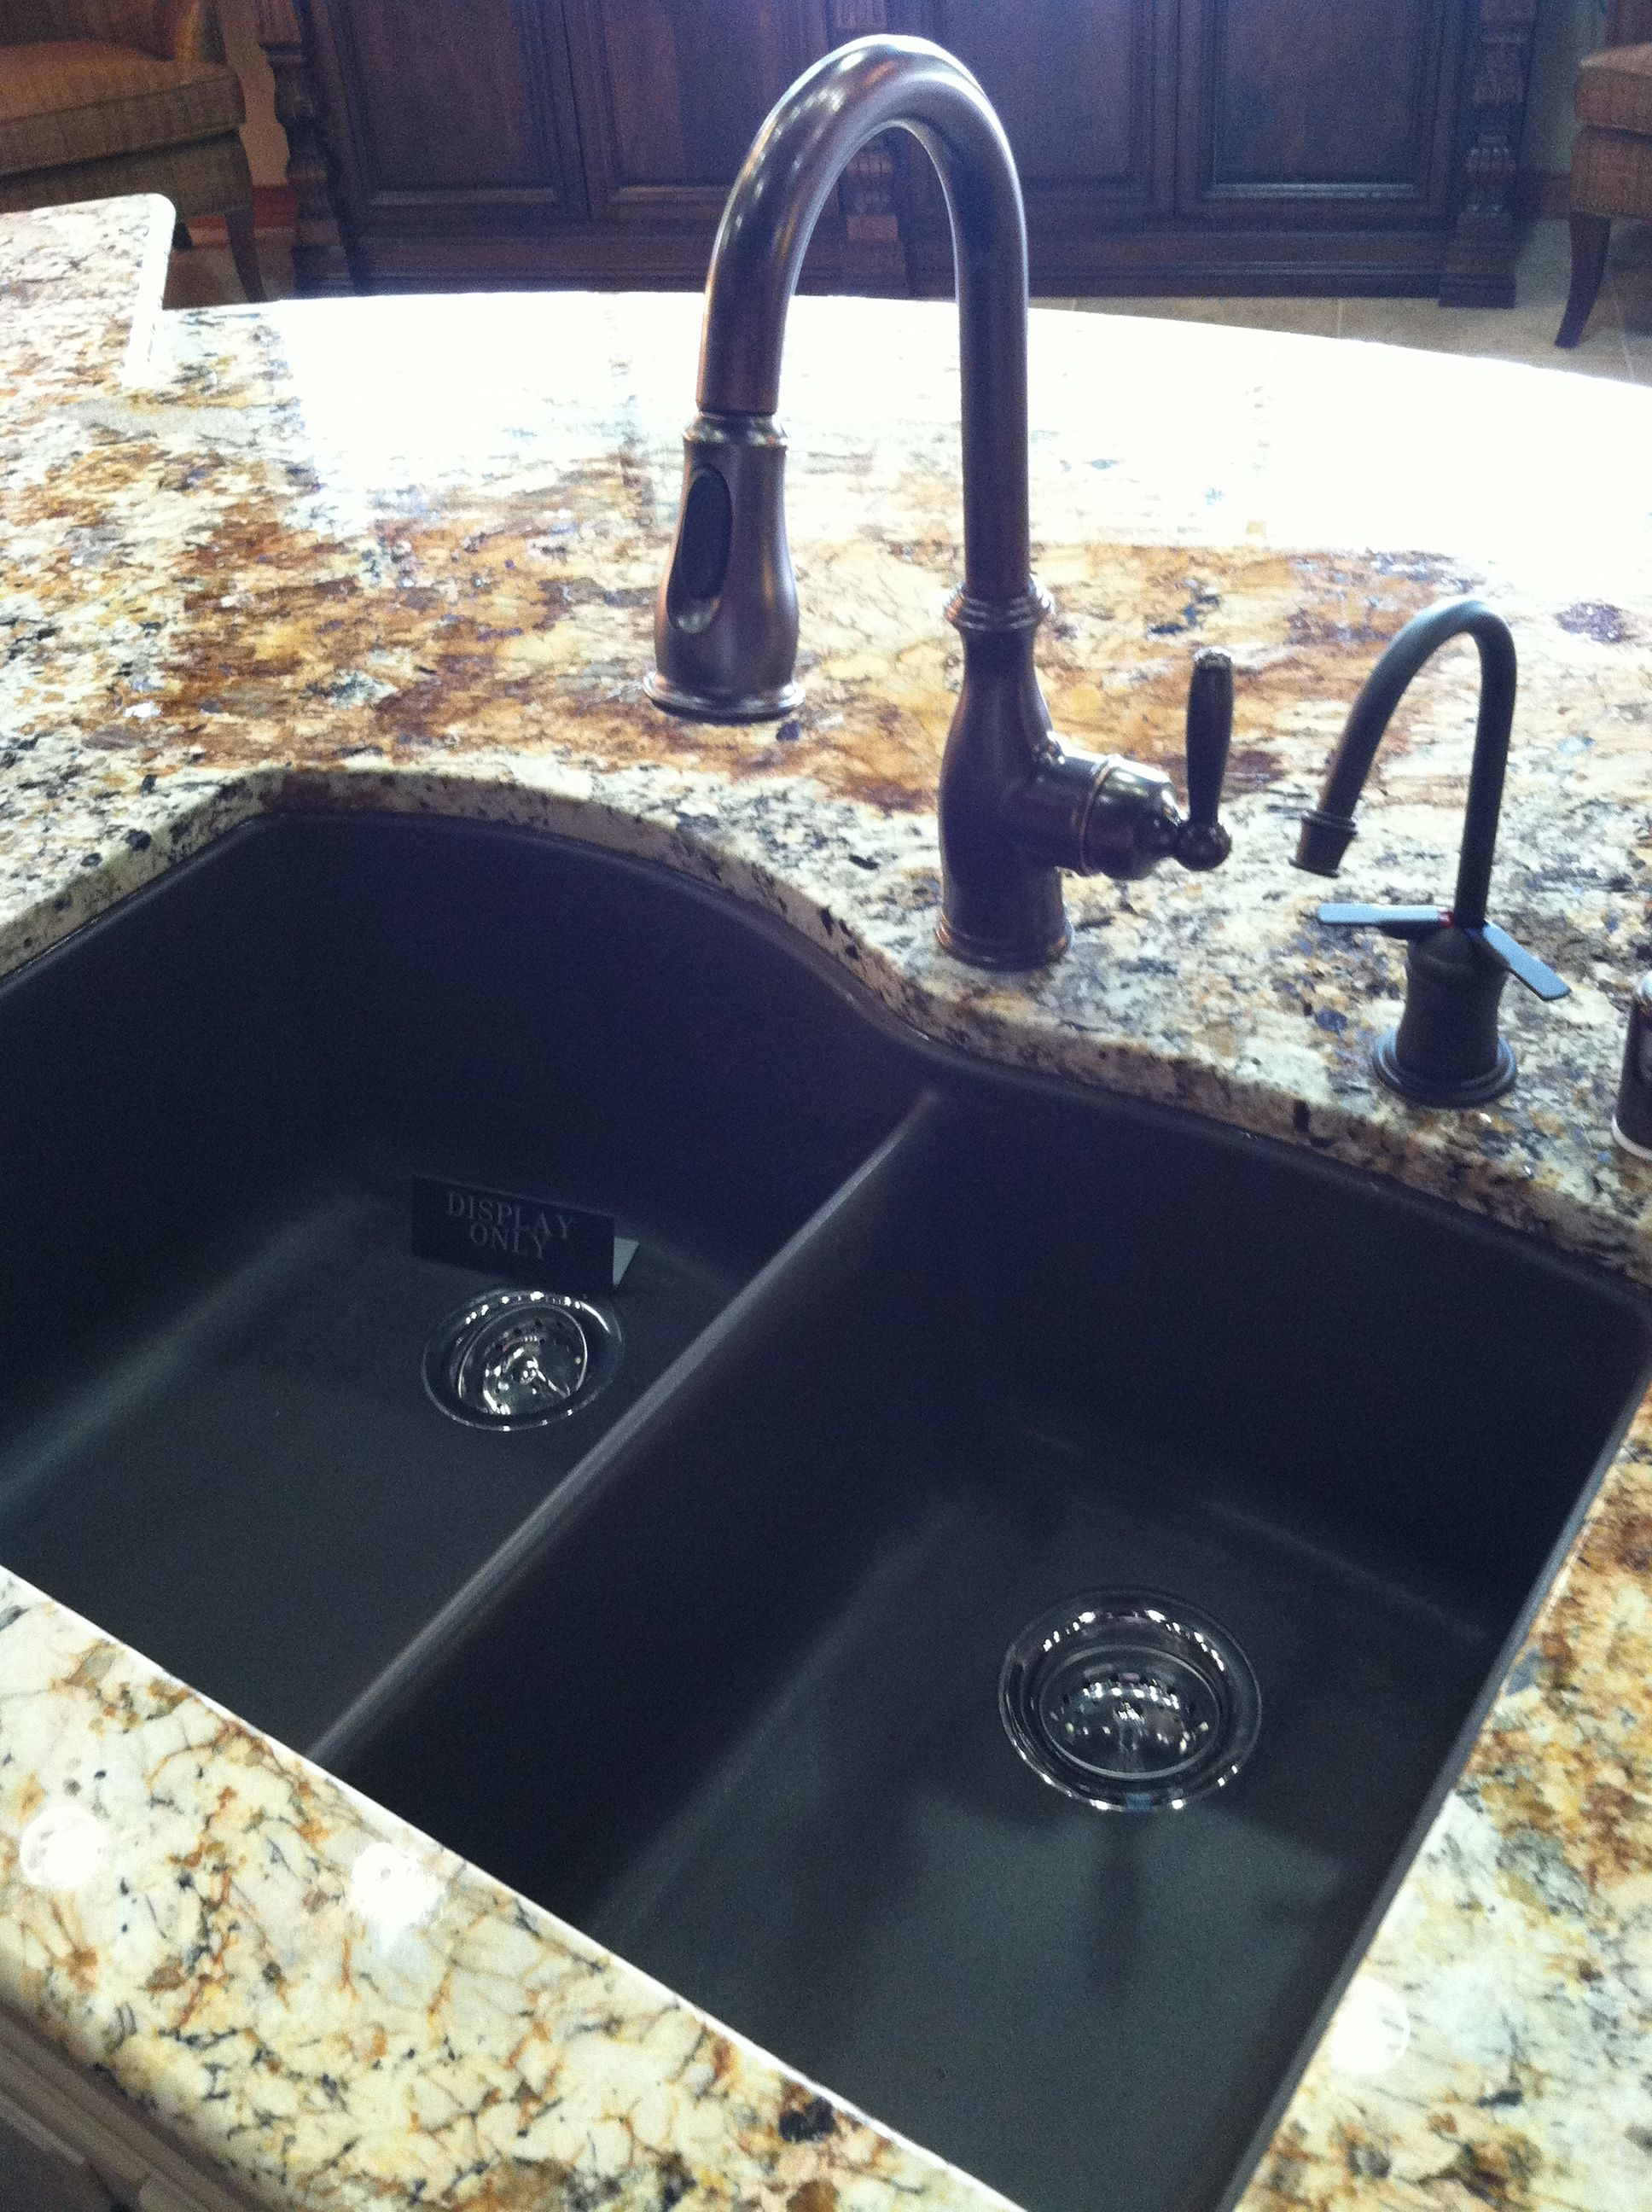 Stone Composite Sink : granite composite kitchen sink Ideas for the Home Pinterest